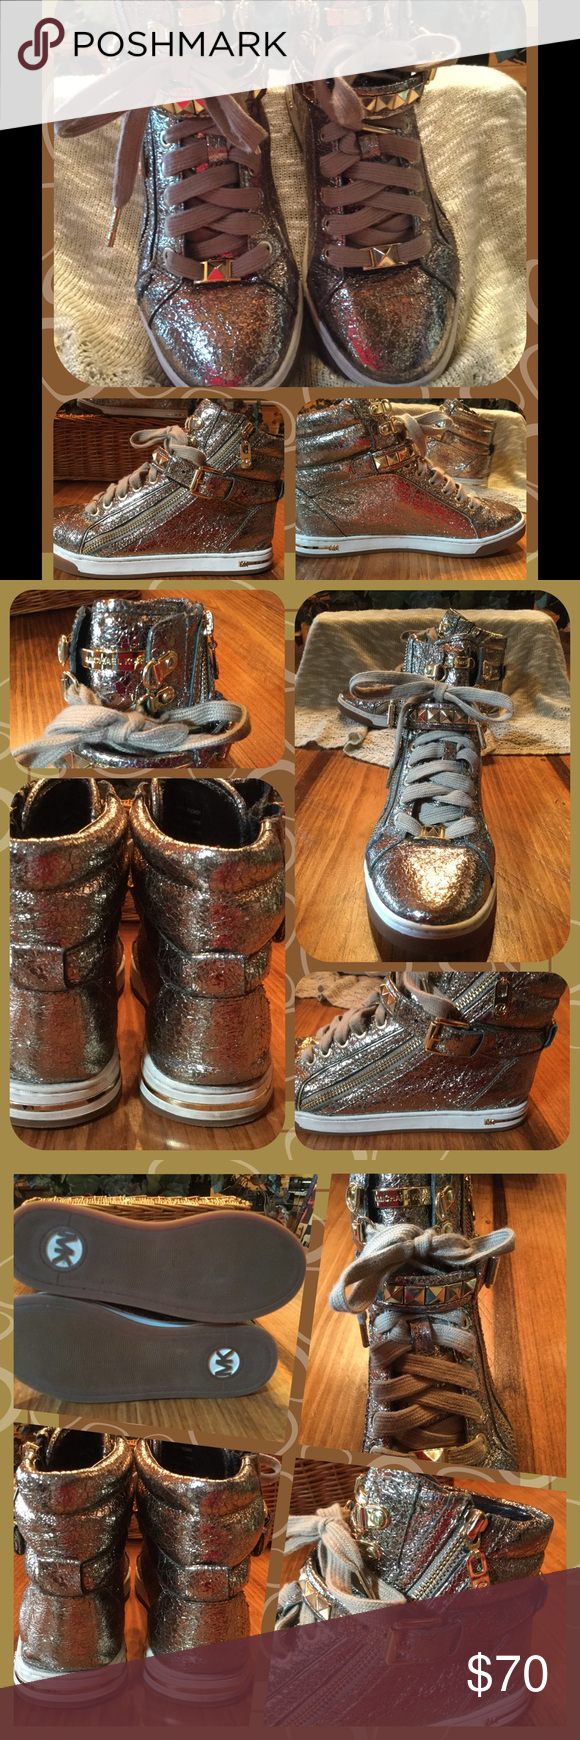 Michael Kors Glam Gold Metallic High Tops 6.5 Fashion forward, preowned, in very good condition, Michael Kors, Glam Studded, crinkle, gold metallic high top sneakers. Shoes have pyramid studded strap with workable, adjustable buckle, gold trim metal, dual zipper closures, lace up front, leather upper, padded collar, man-made lining, rubber sole. These are trendy, not your ordinary sneakers in size 6.5 M.  From smoke free home with pets. Please, no trades or holds. Michael Kors Shoes Sneakers